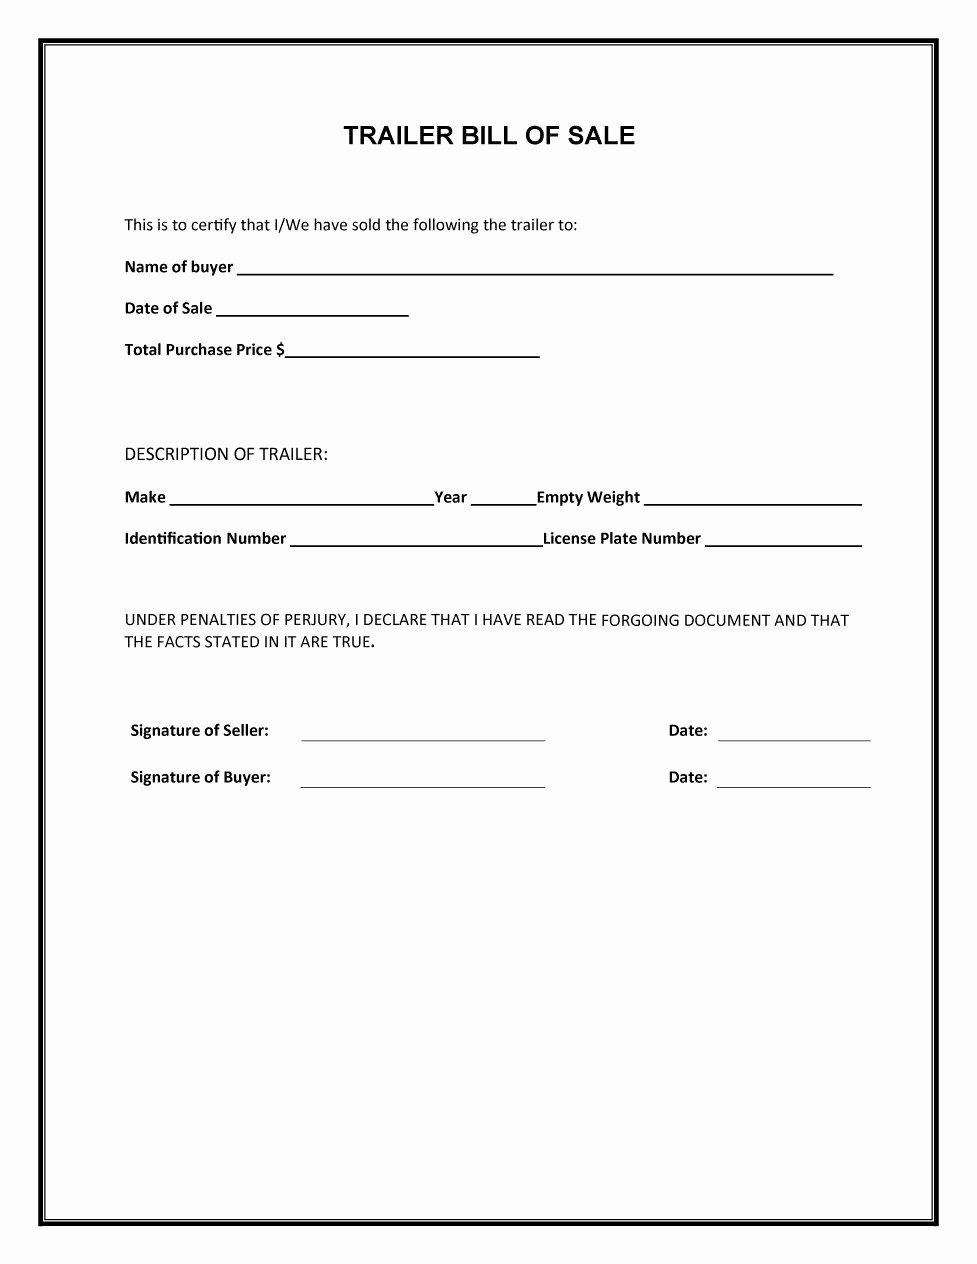 Bill Of Sale Example form Elegant 45 Fee Printable Bill Of Sale Templates Car Boat Gun